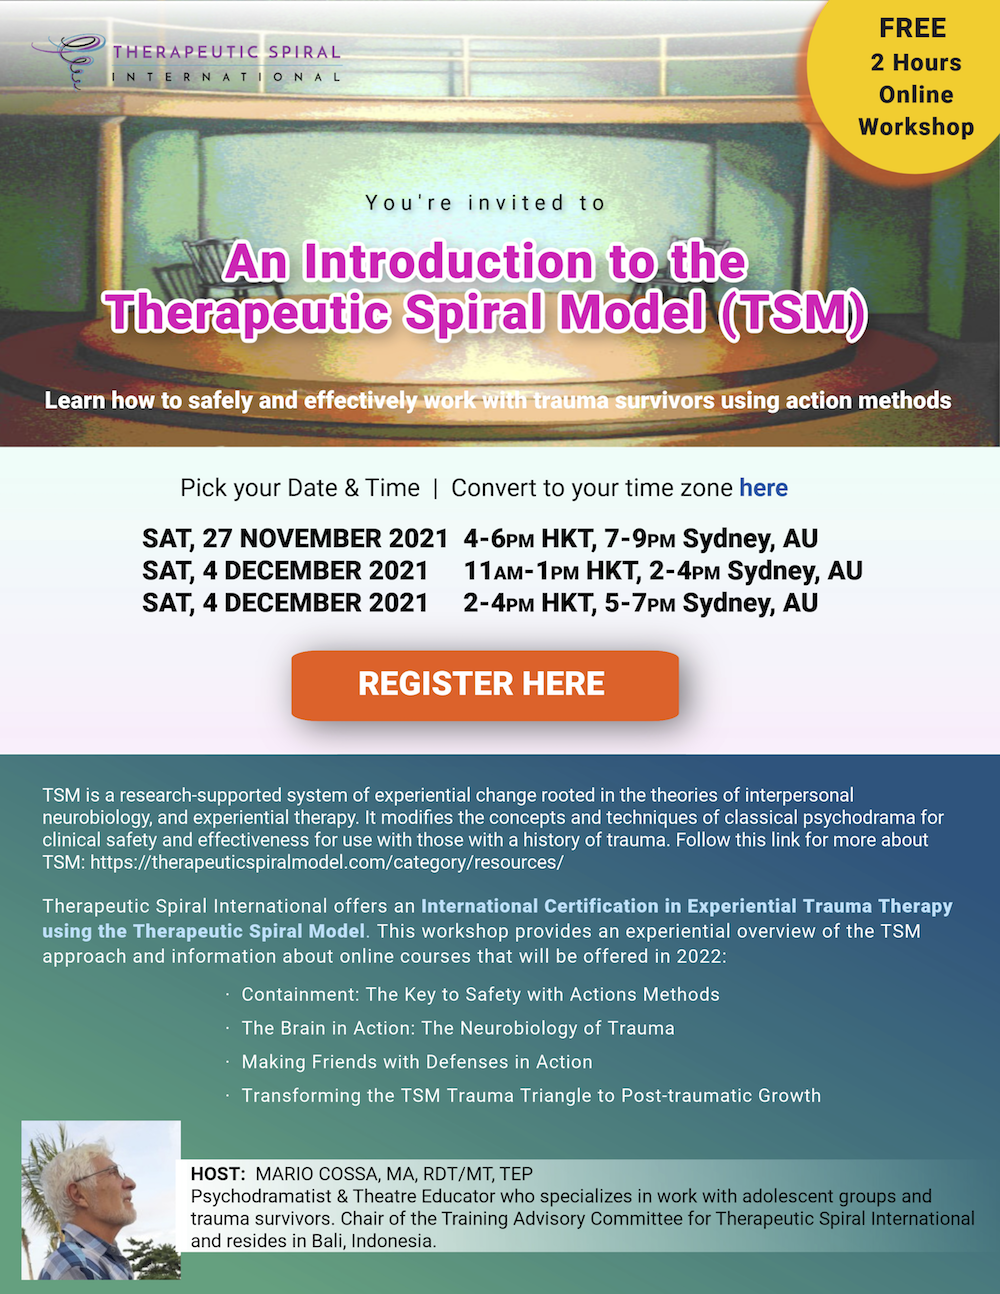 An Introduction to the Therapeutic Spiral Model (TSM)